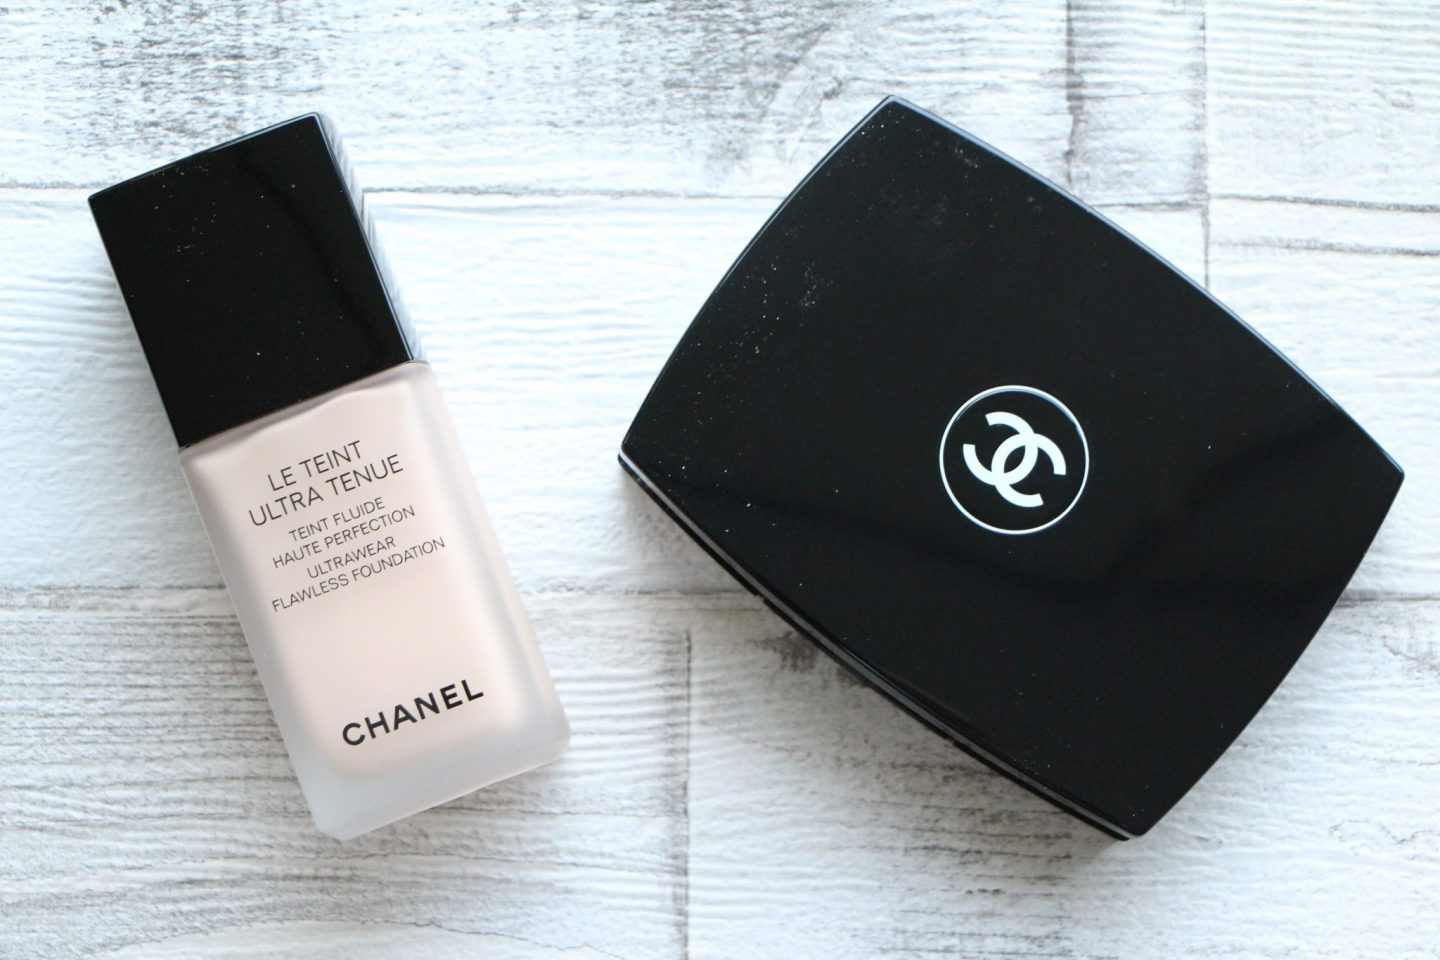 chanel foundation review